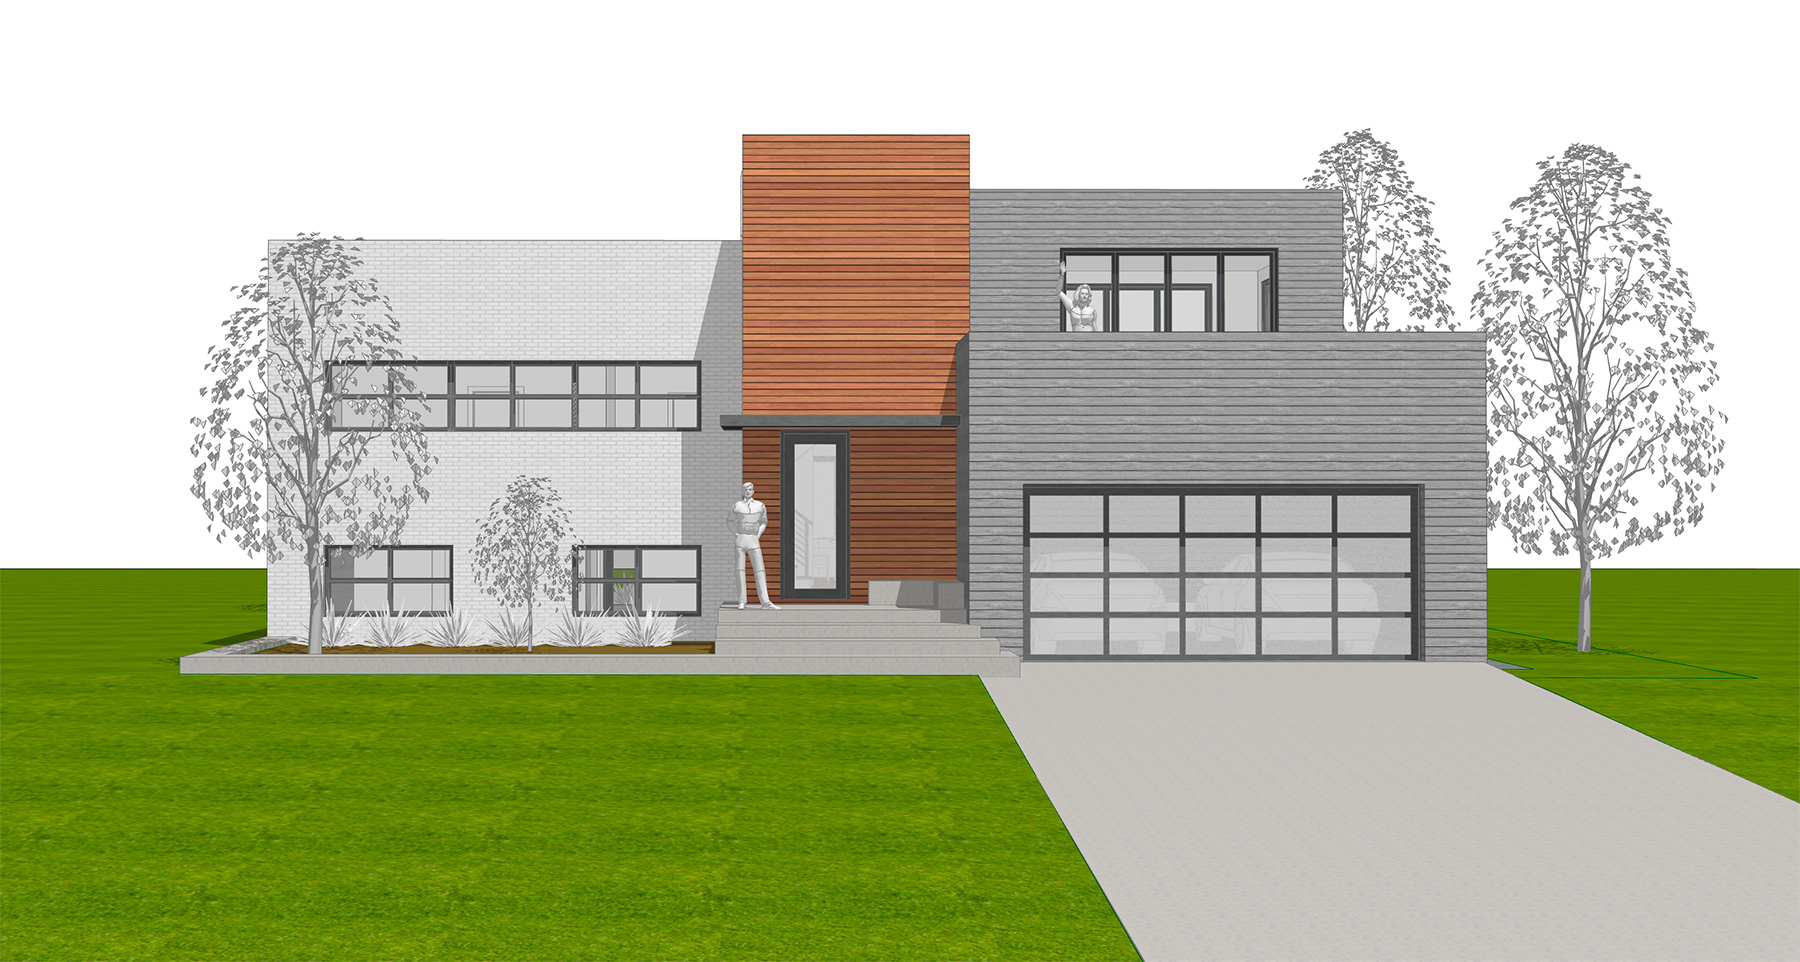 PROPOSED FRONT PERSPECTIVE